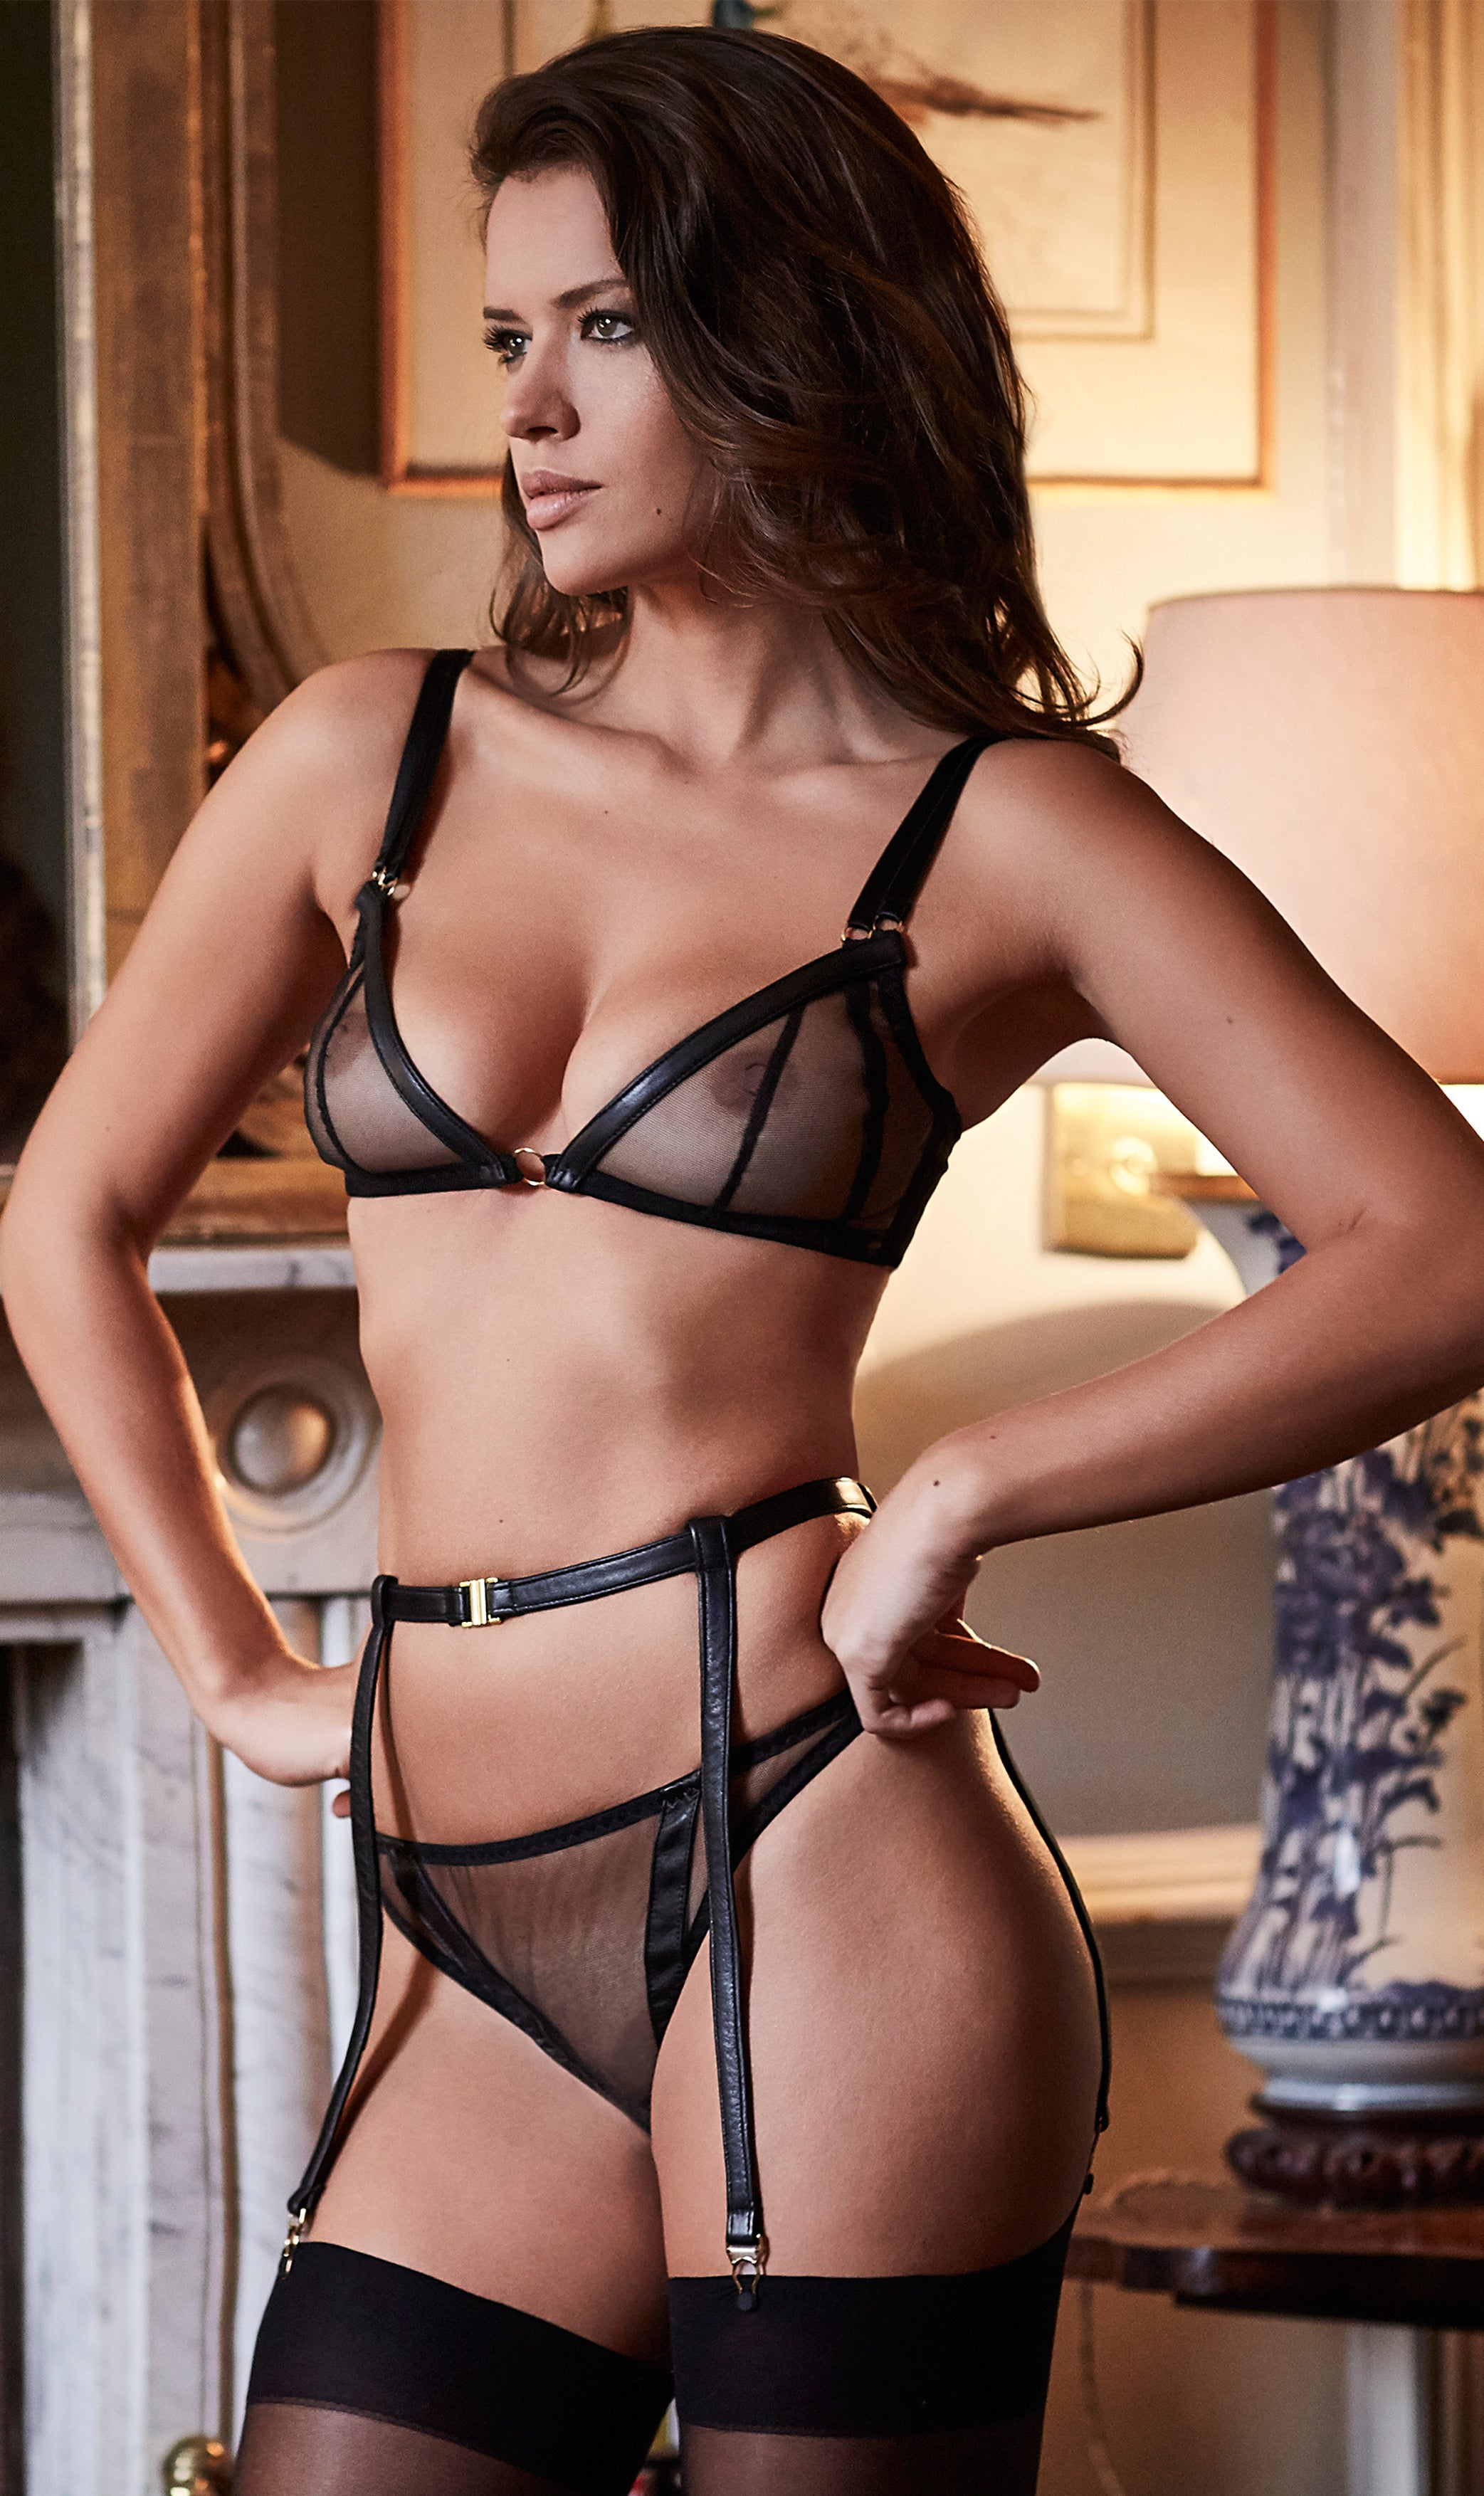 sheer non wired bra with see through thong and leather suspender with leather BDSM accessories